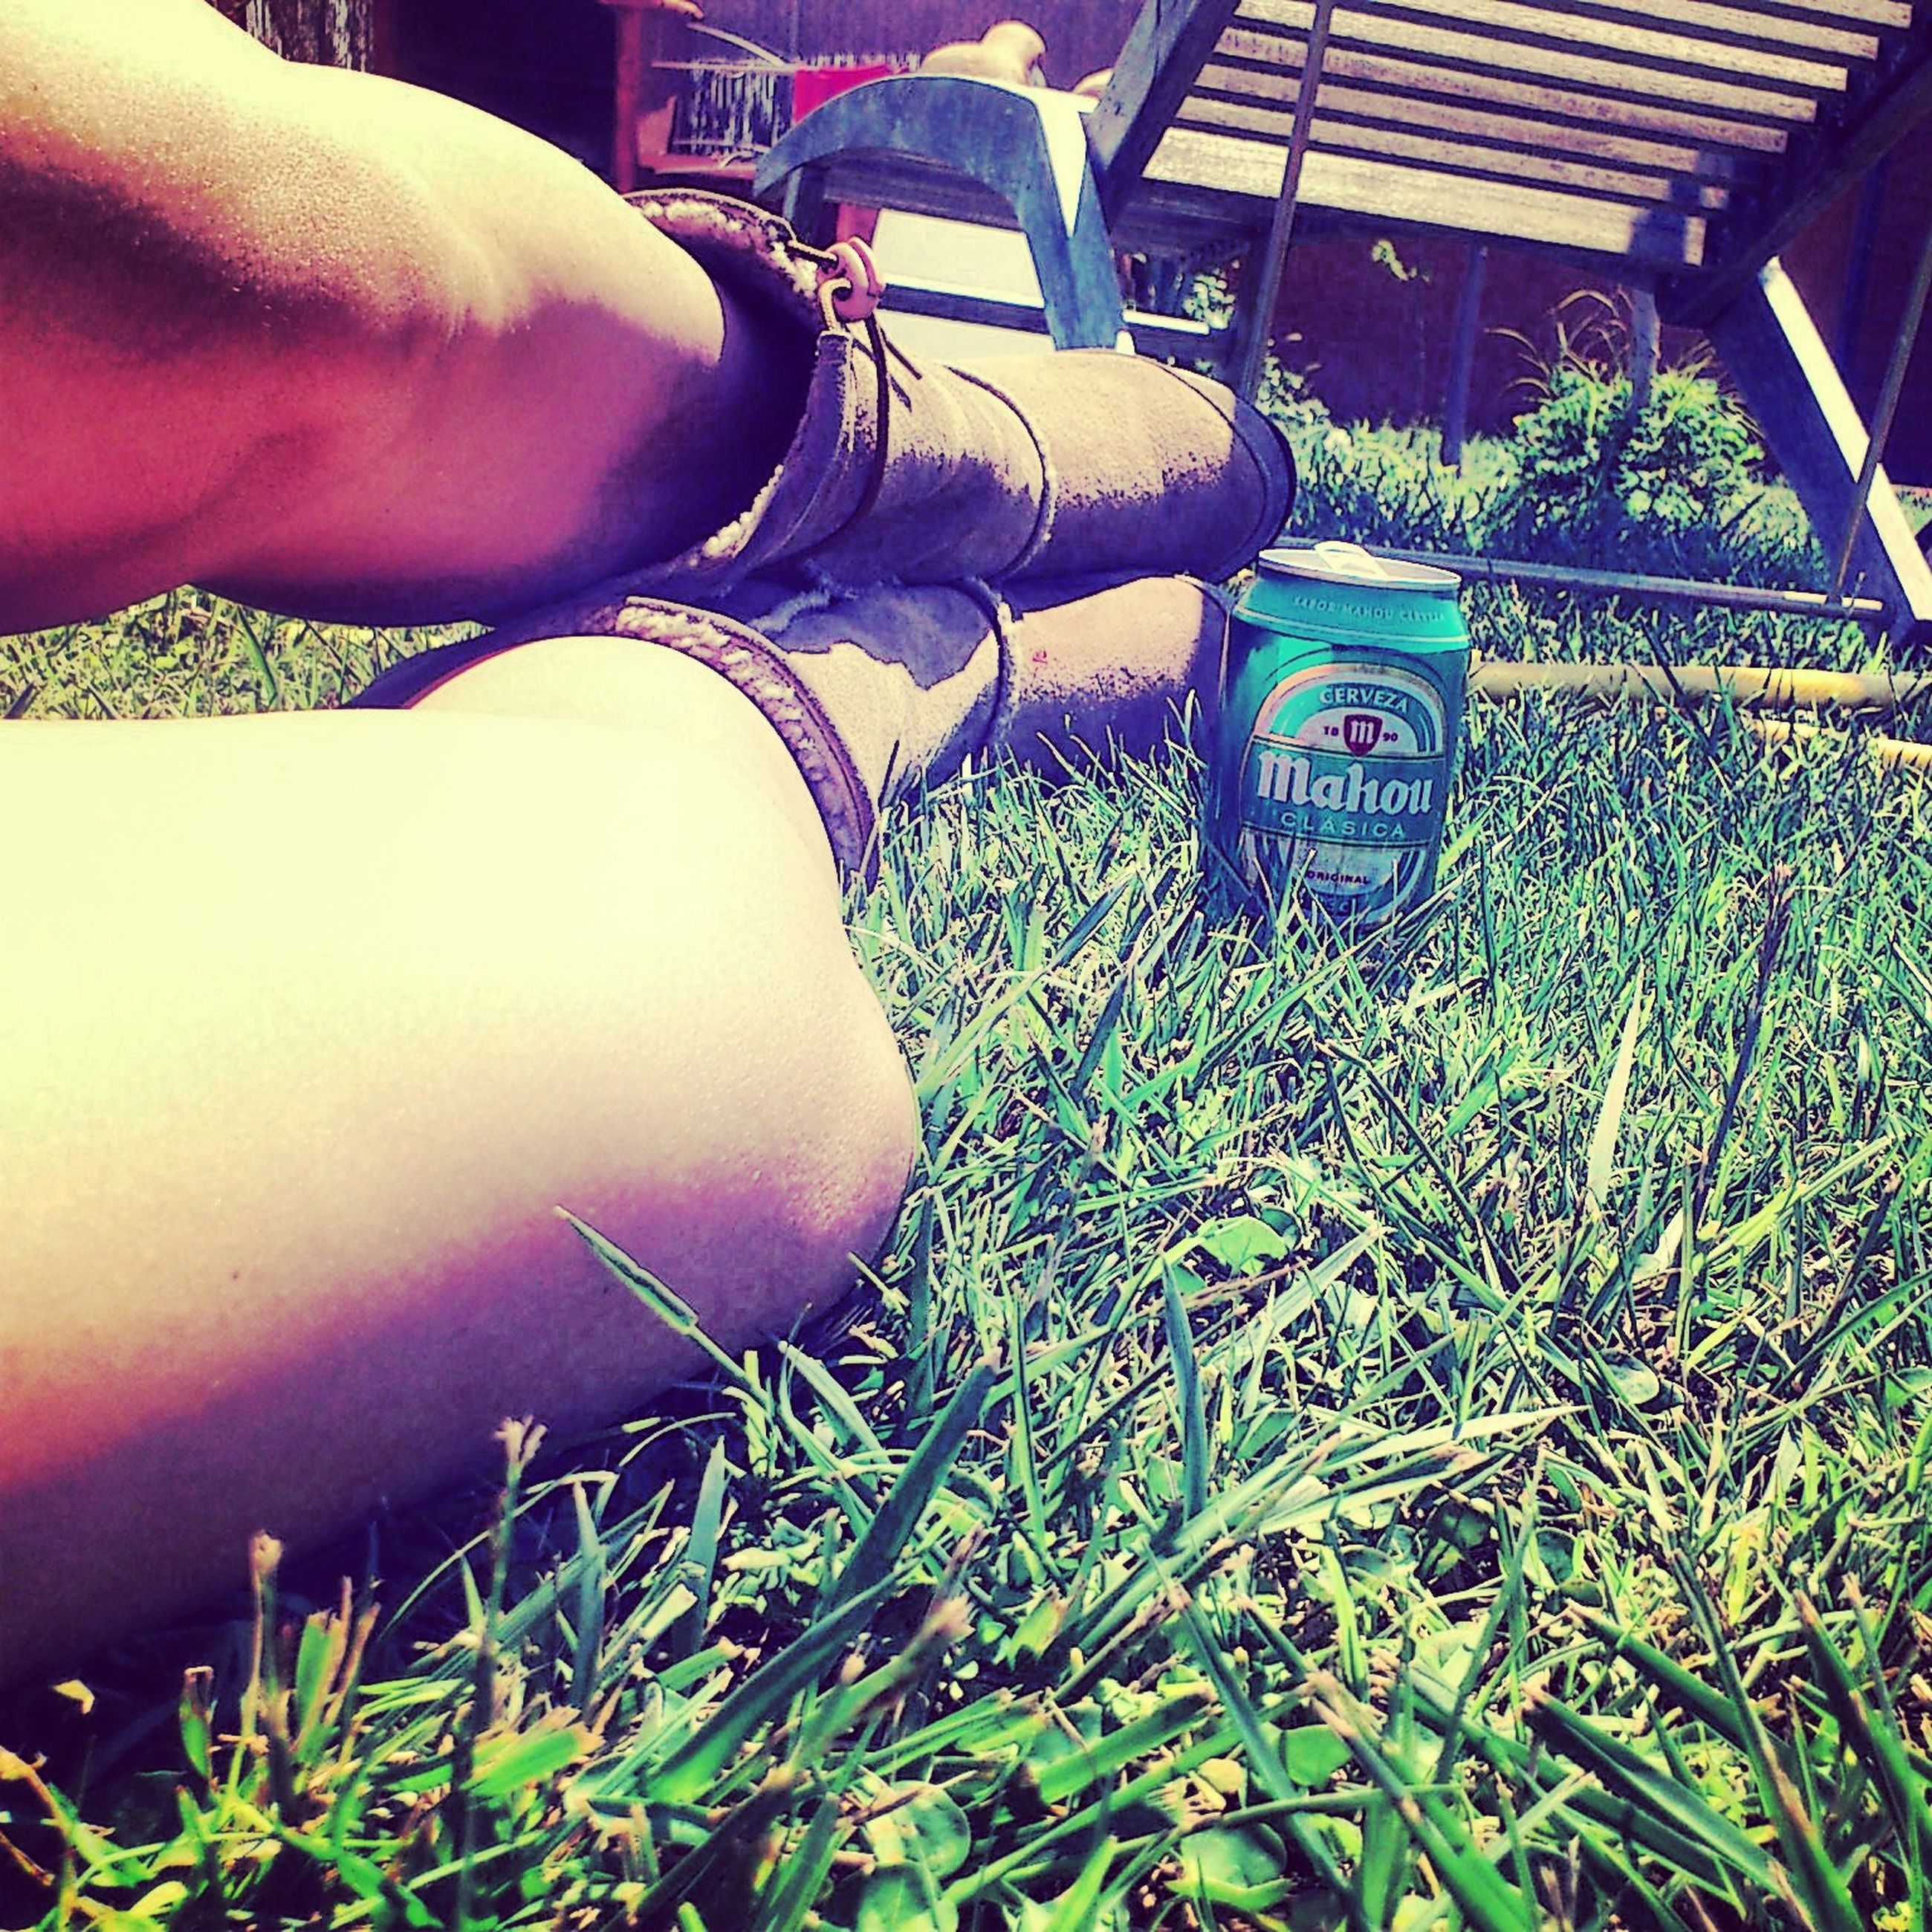 grass, high angle view, field, relaxation, low section, front or back yard, day, part of, lifestyles, outdoors, sitting, grassy, plant, sunlight, chair, person, leisure activity, cropped